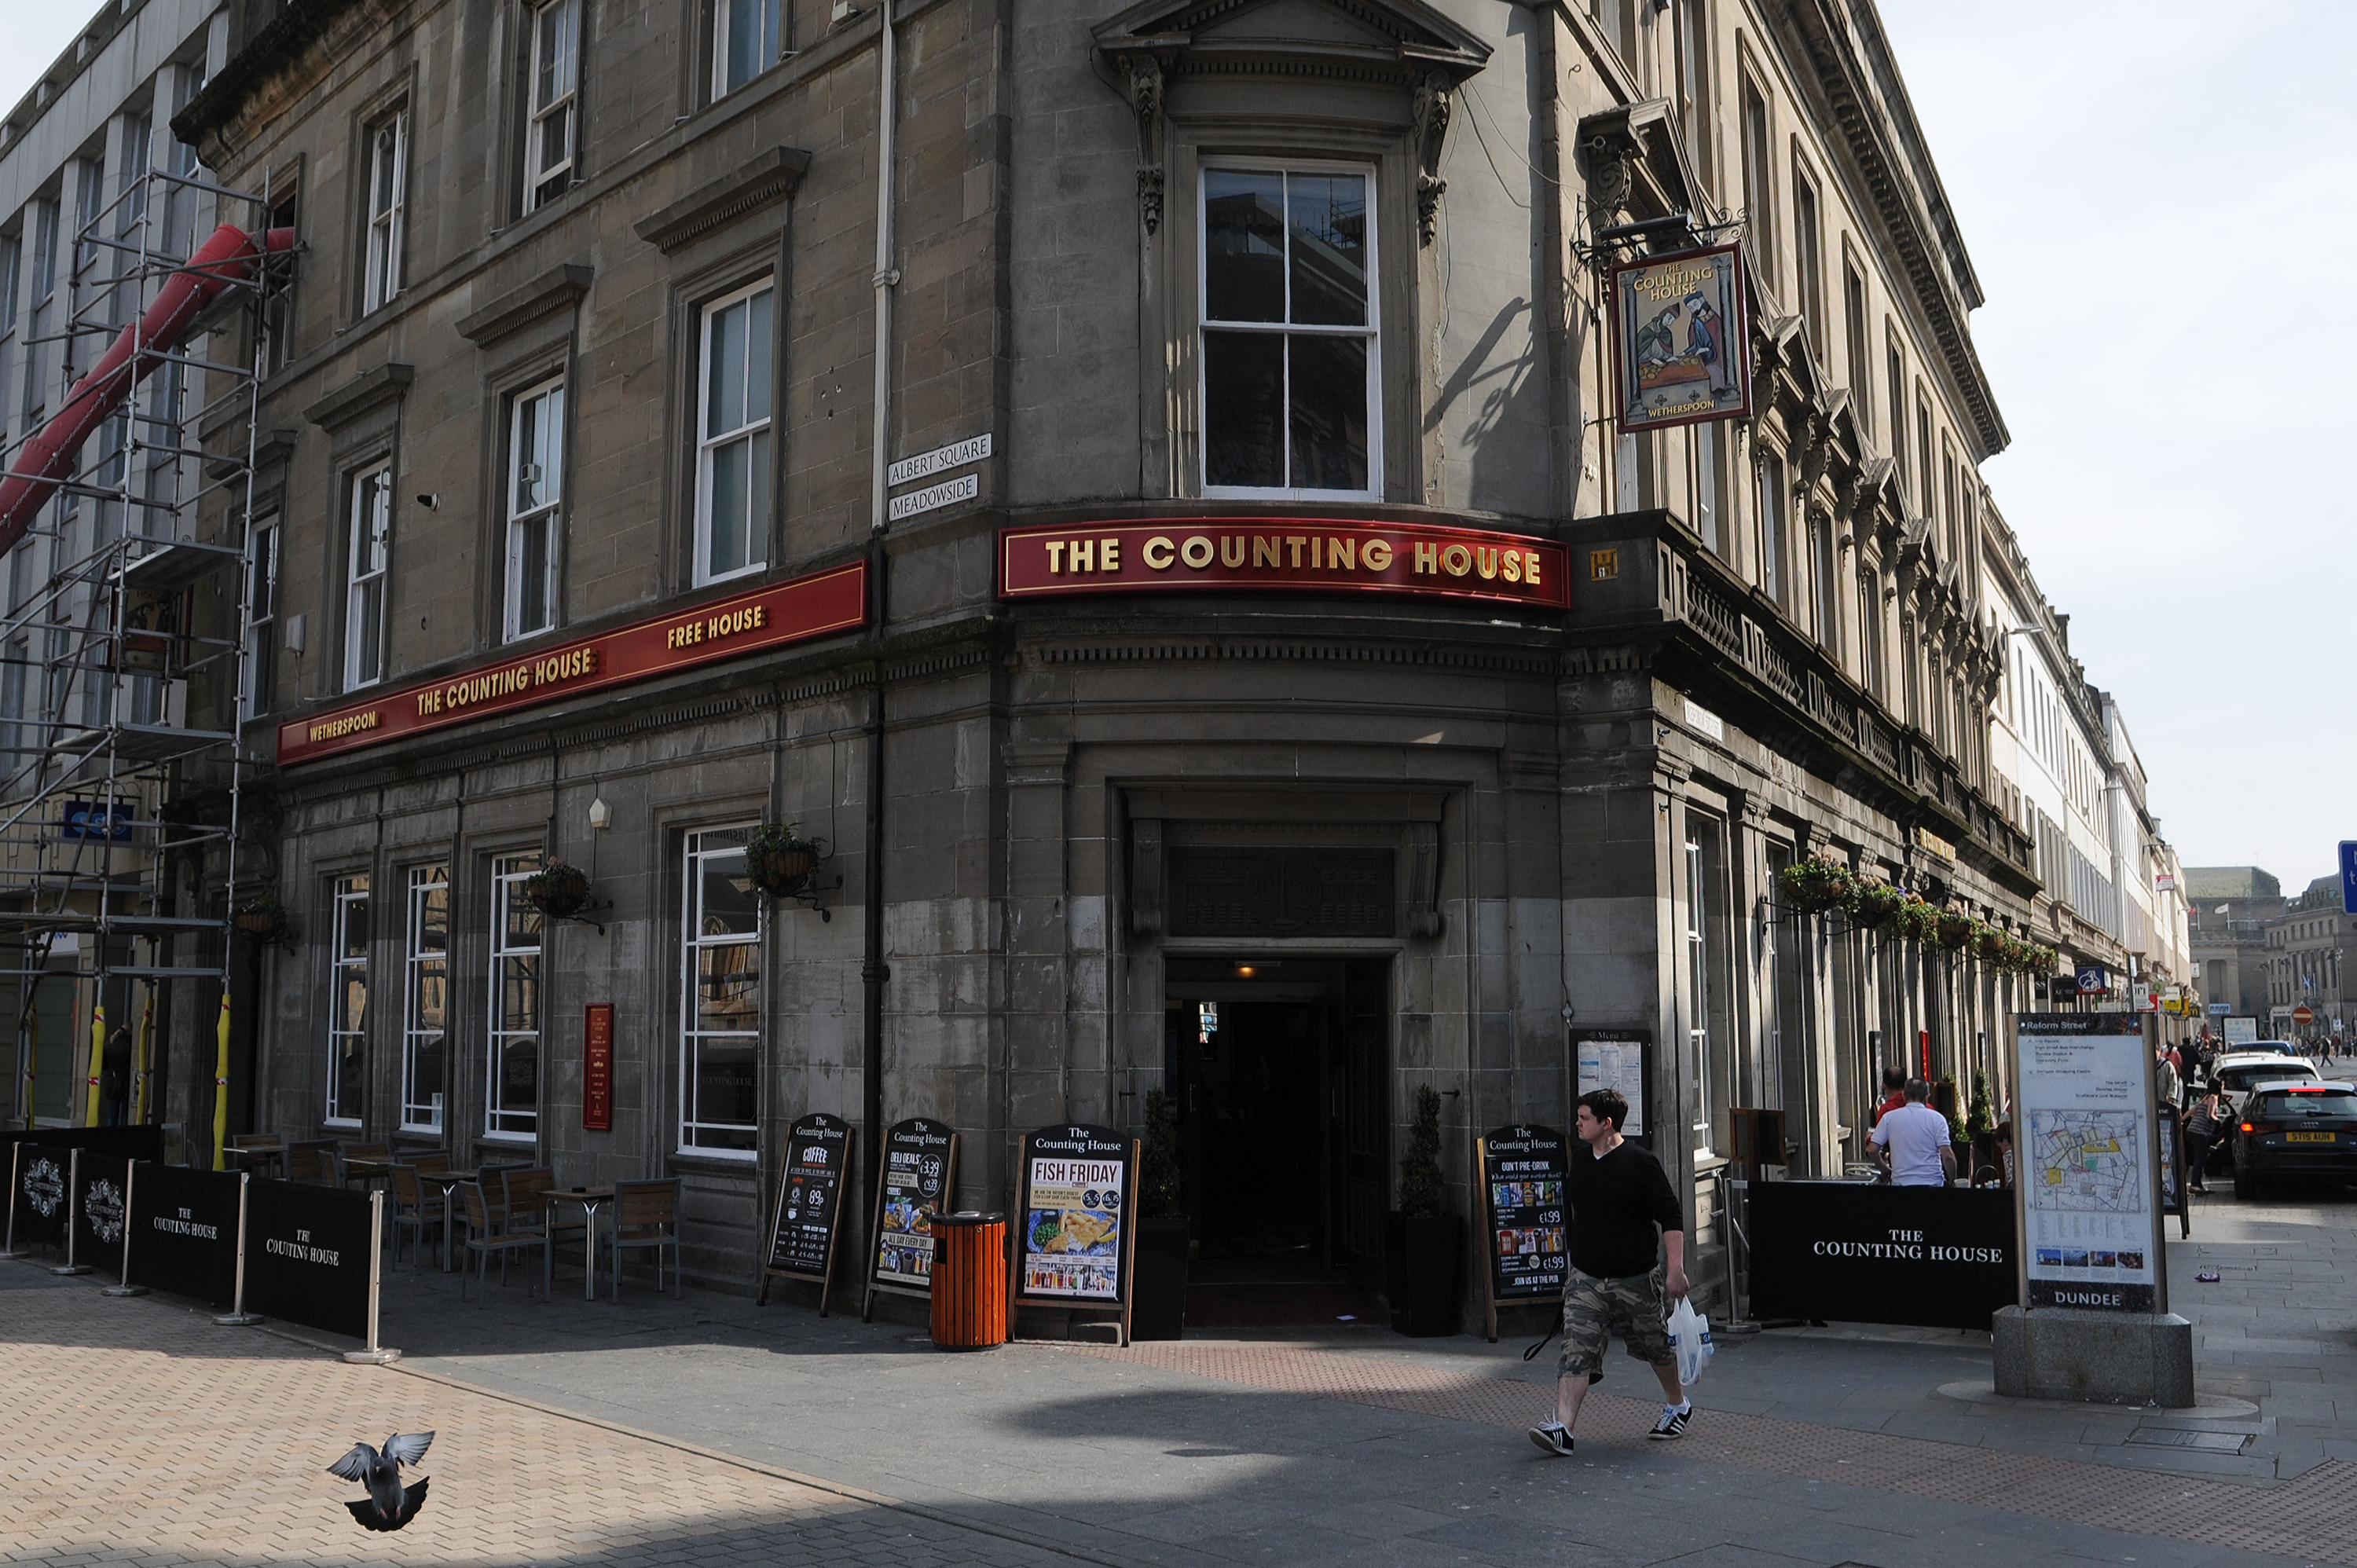 The Counting House, Reform Street, Dundee